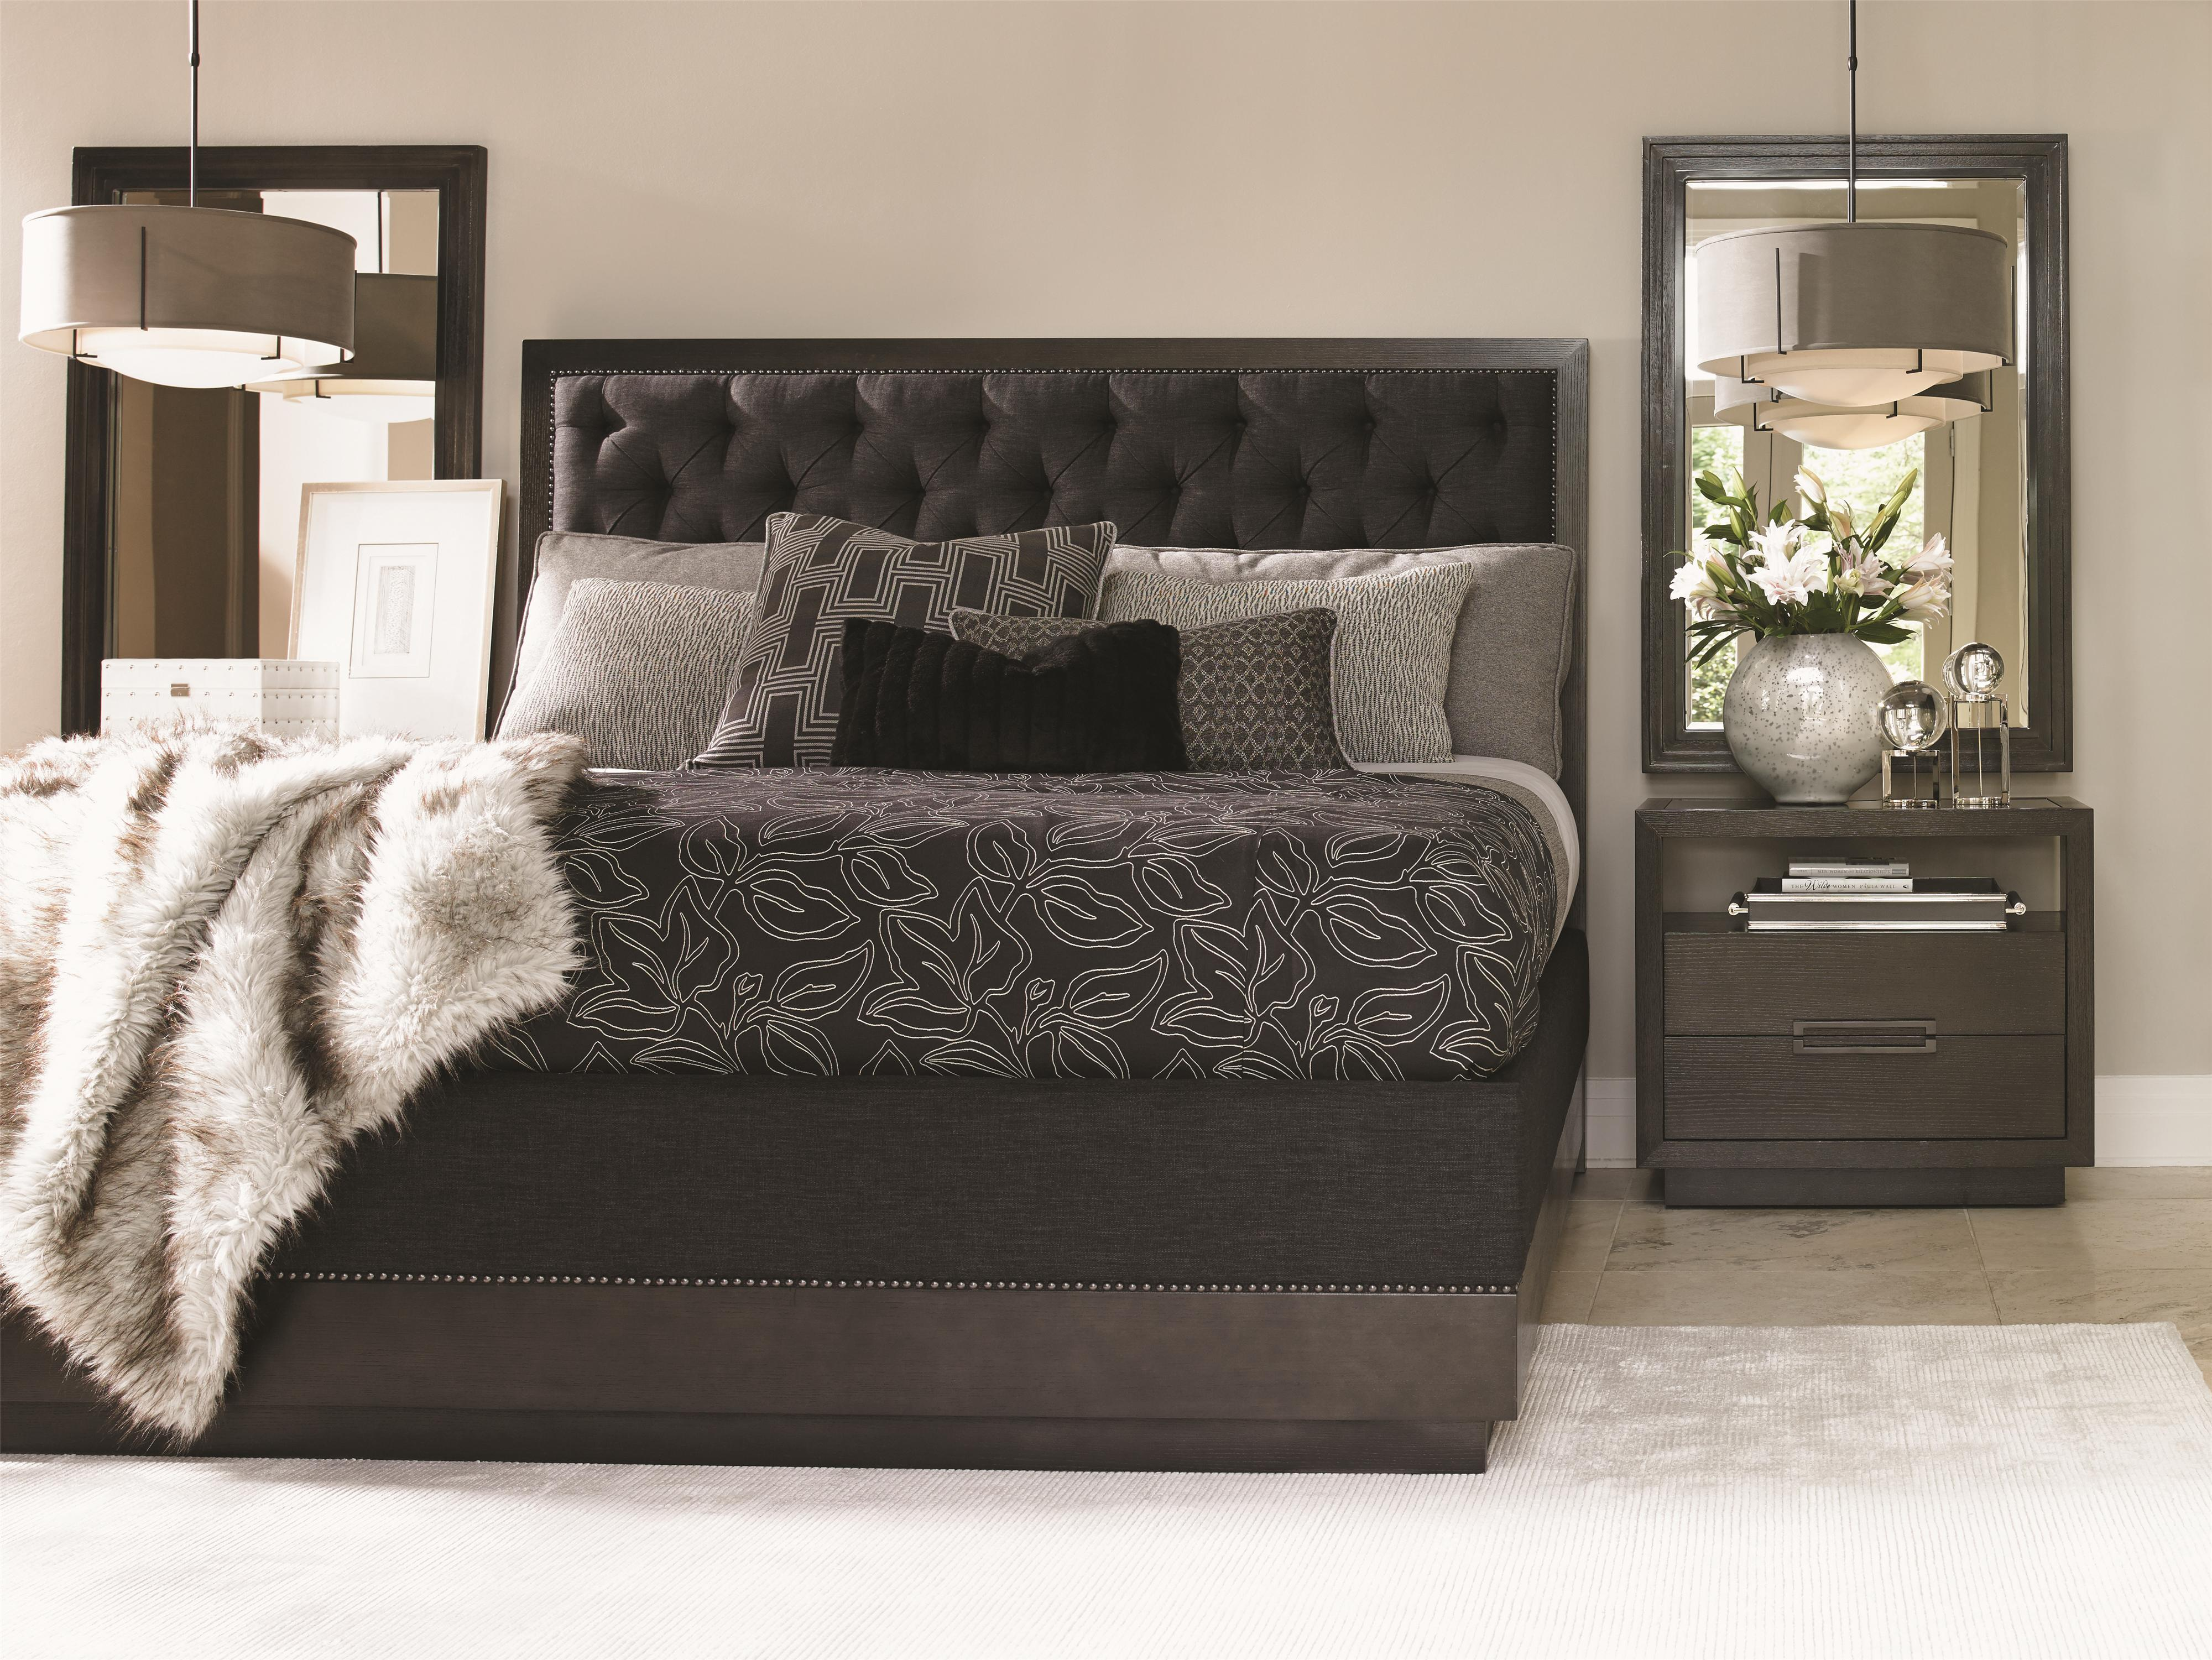 Carrera Bedroom Group by Lexington at Jacksonville Furniture Mart